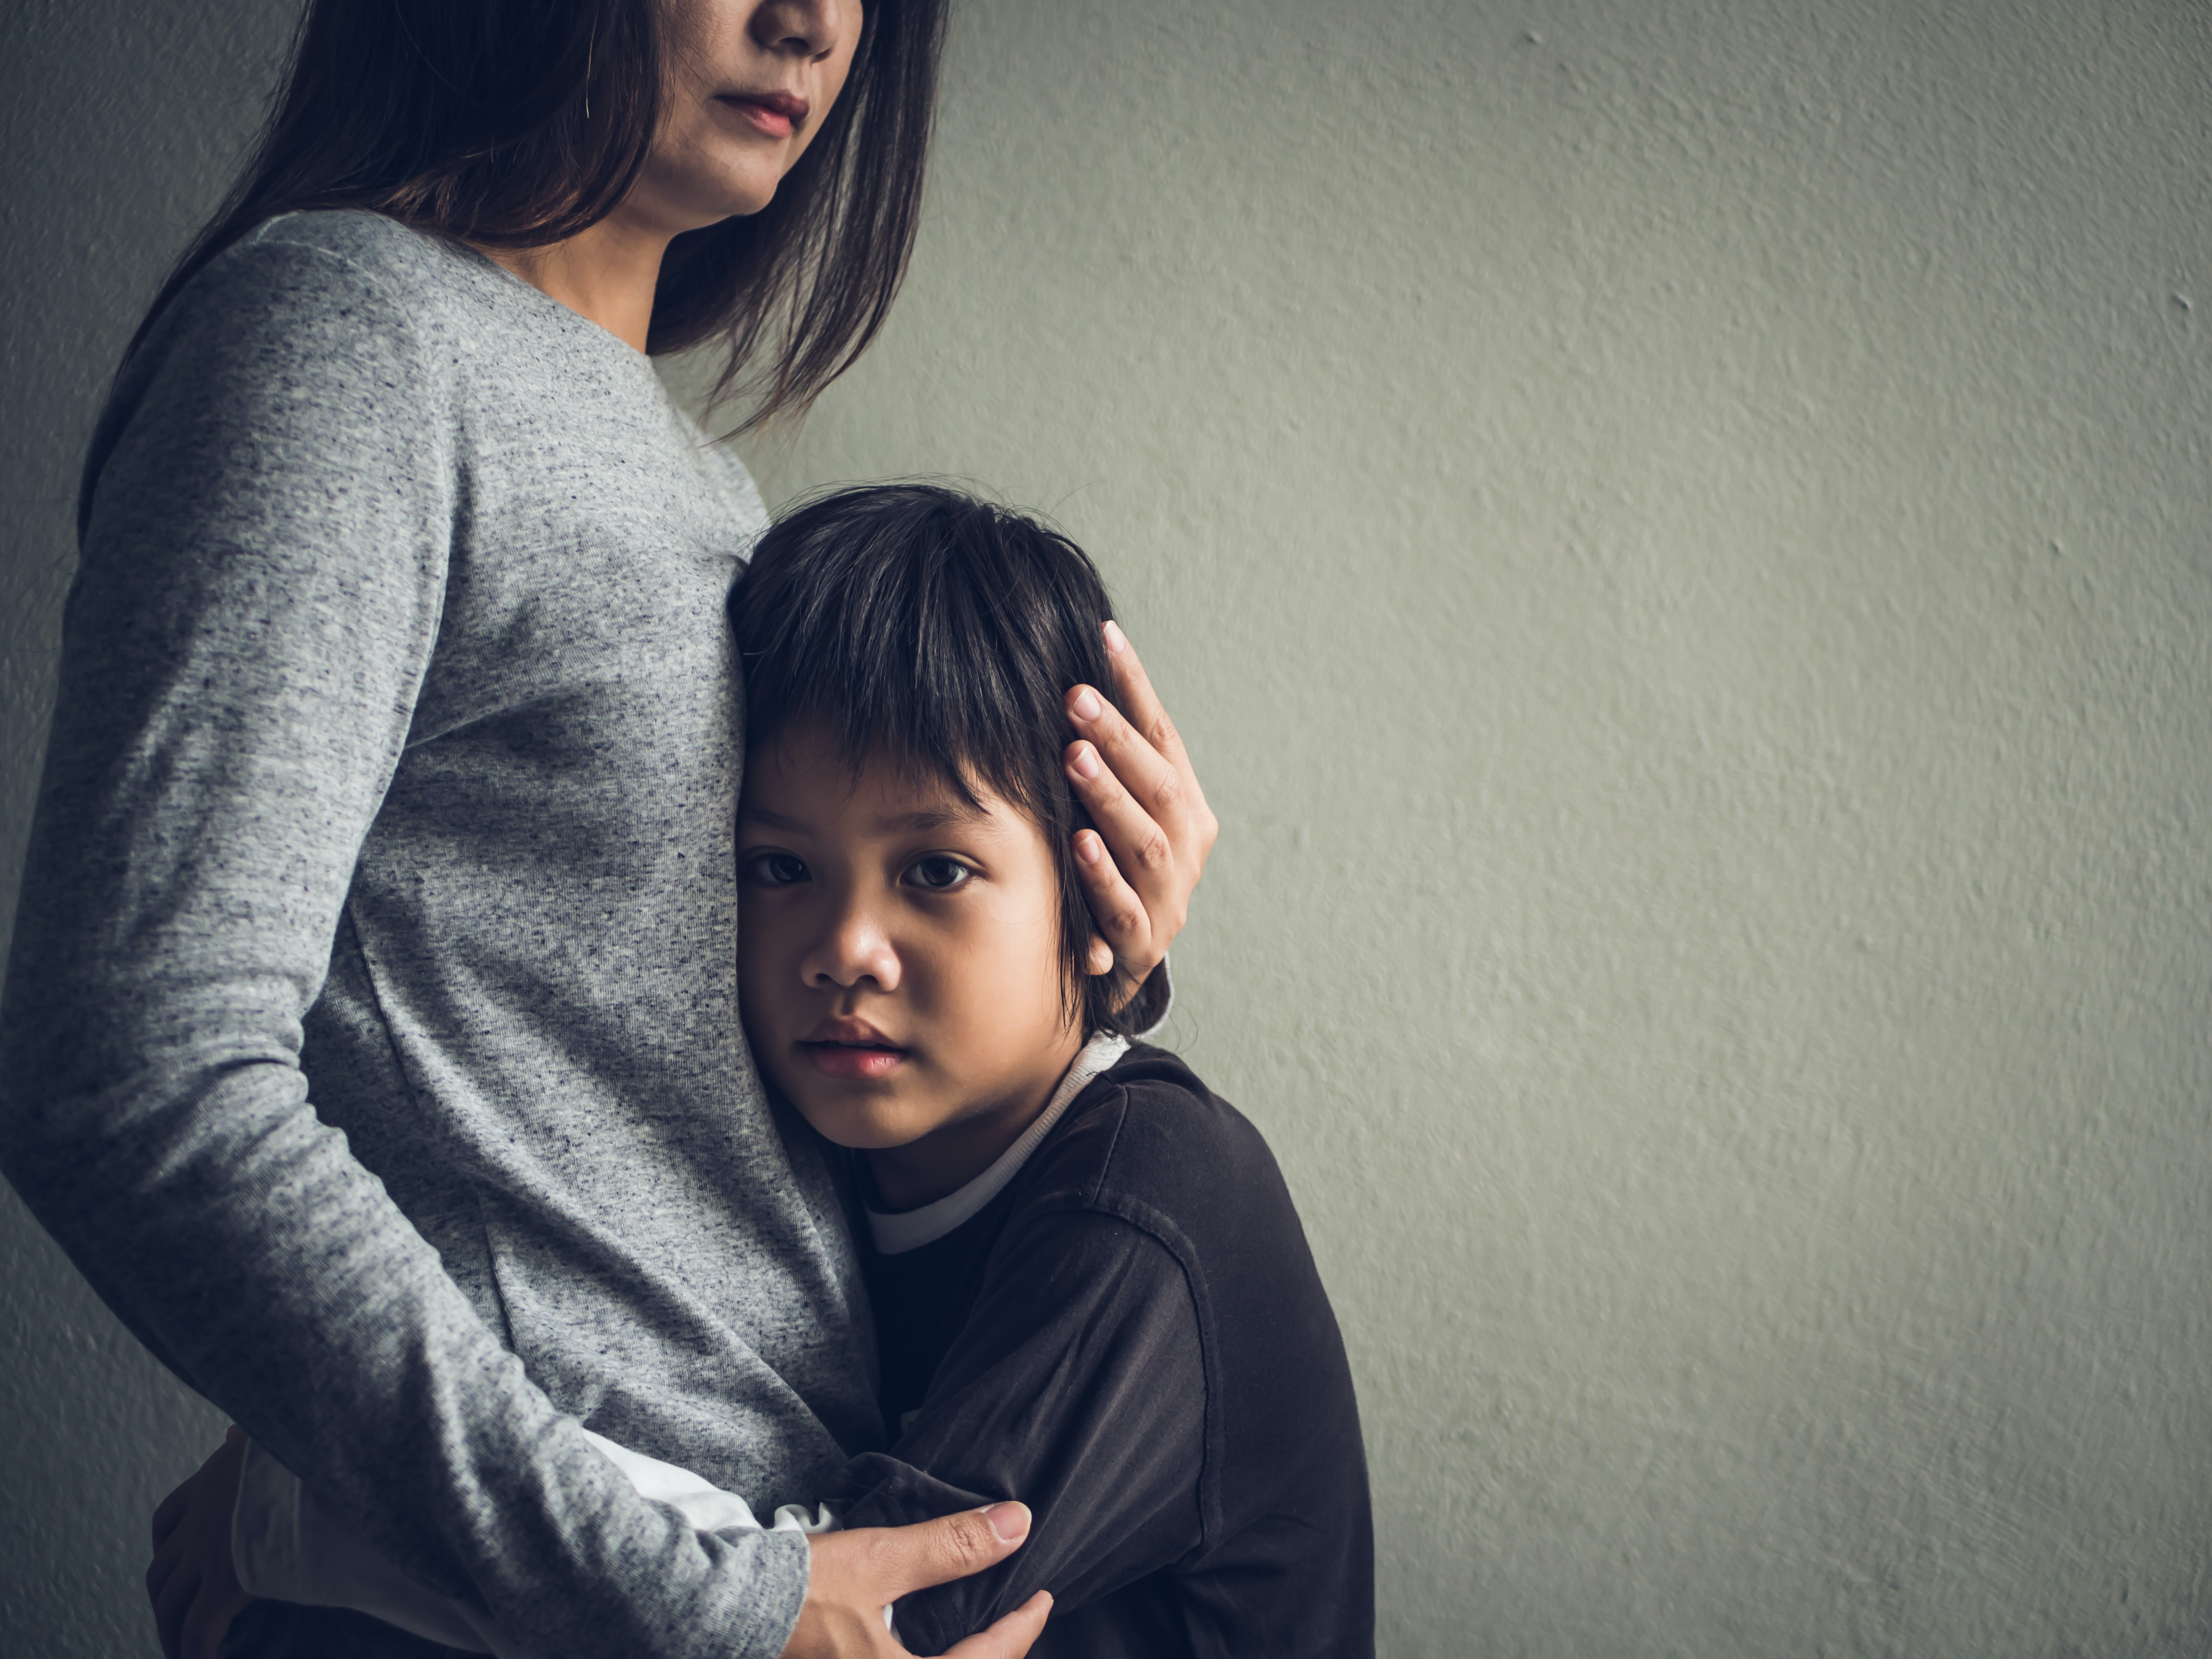 Addressing parental mental illness not only helps the parent, but also mitigates harmful effects on child health. (Shutterstock)